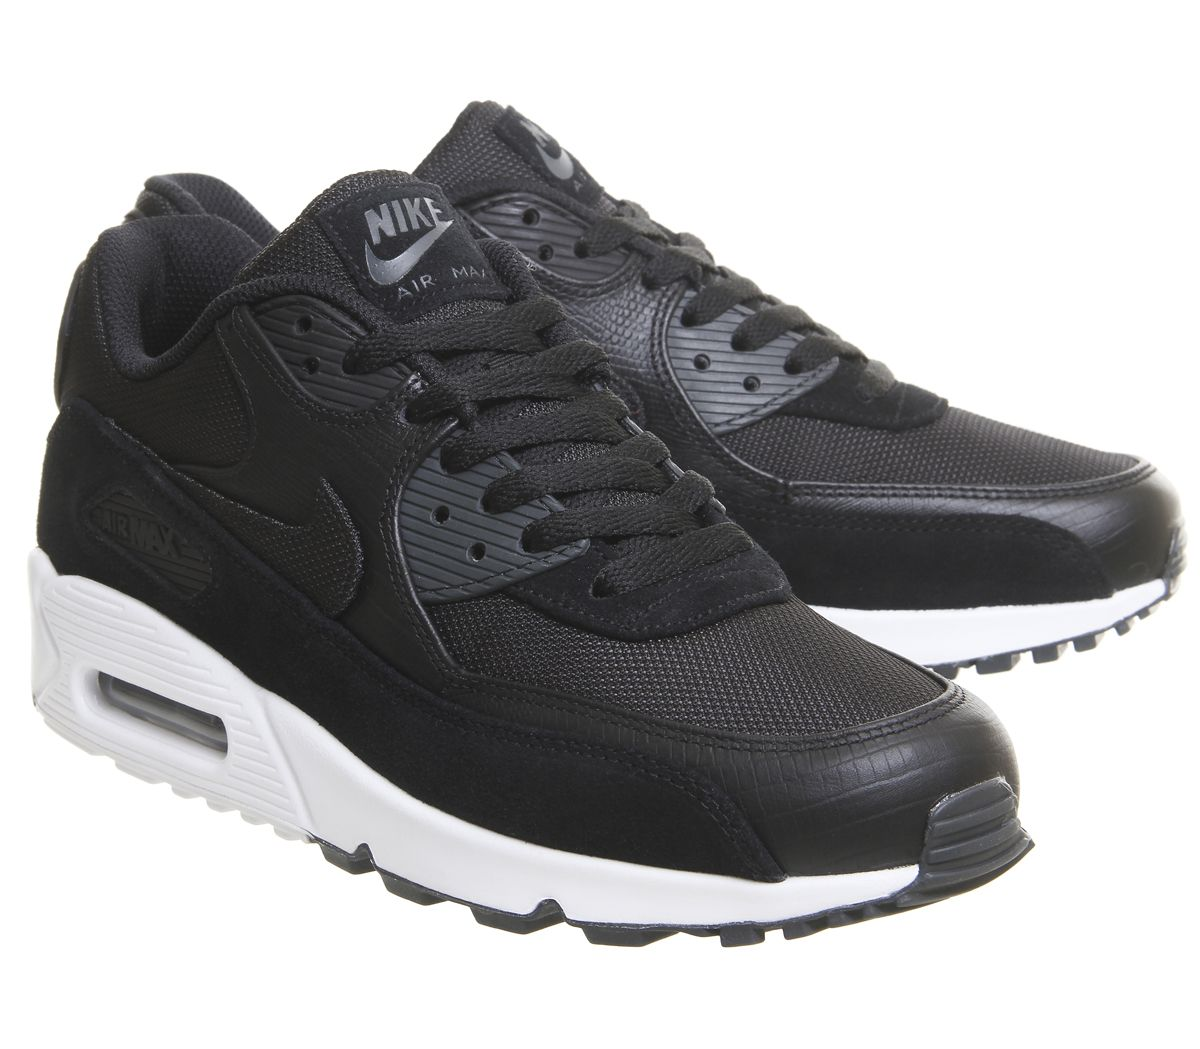 4065cc55b9 Nike Air Max 90 Trainers Black White Anthracite - His trainers